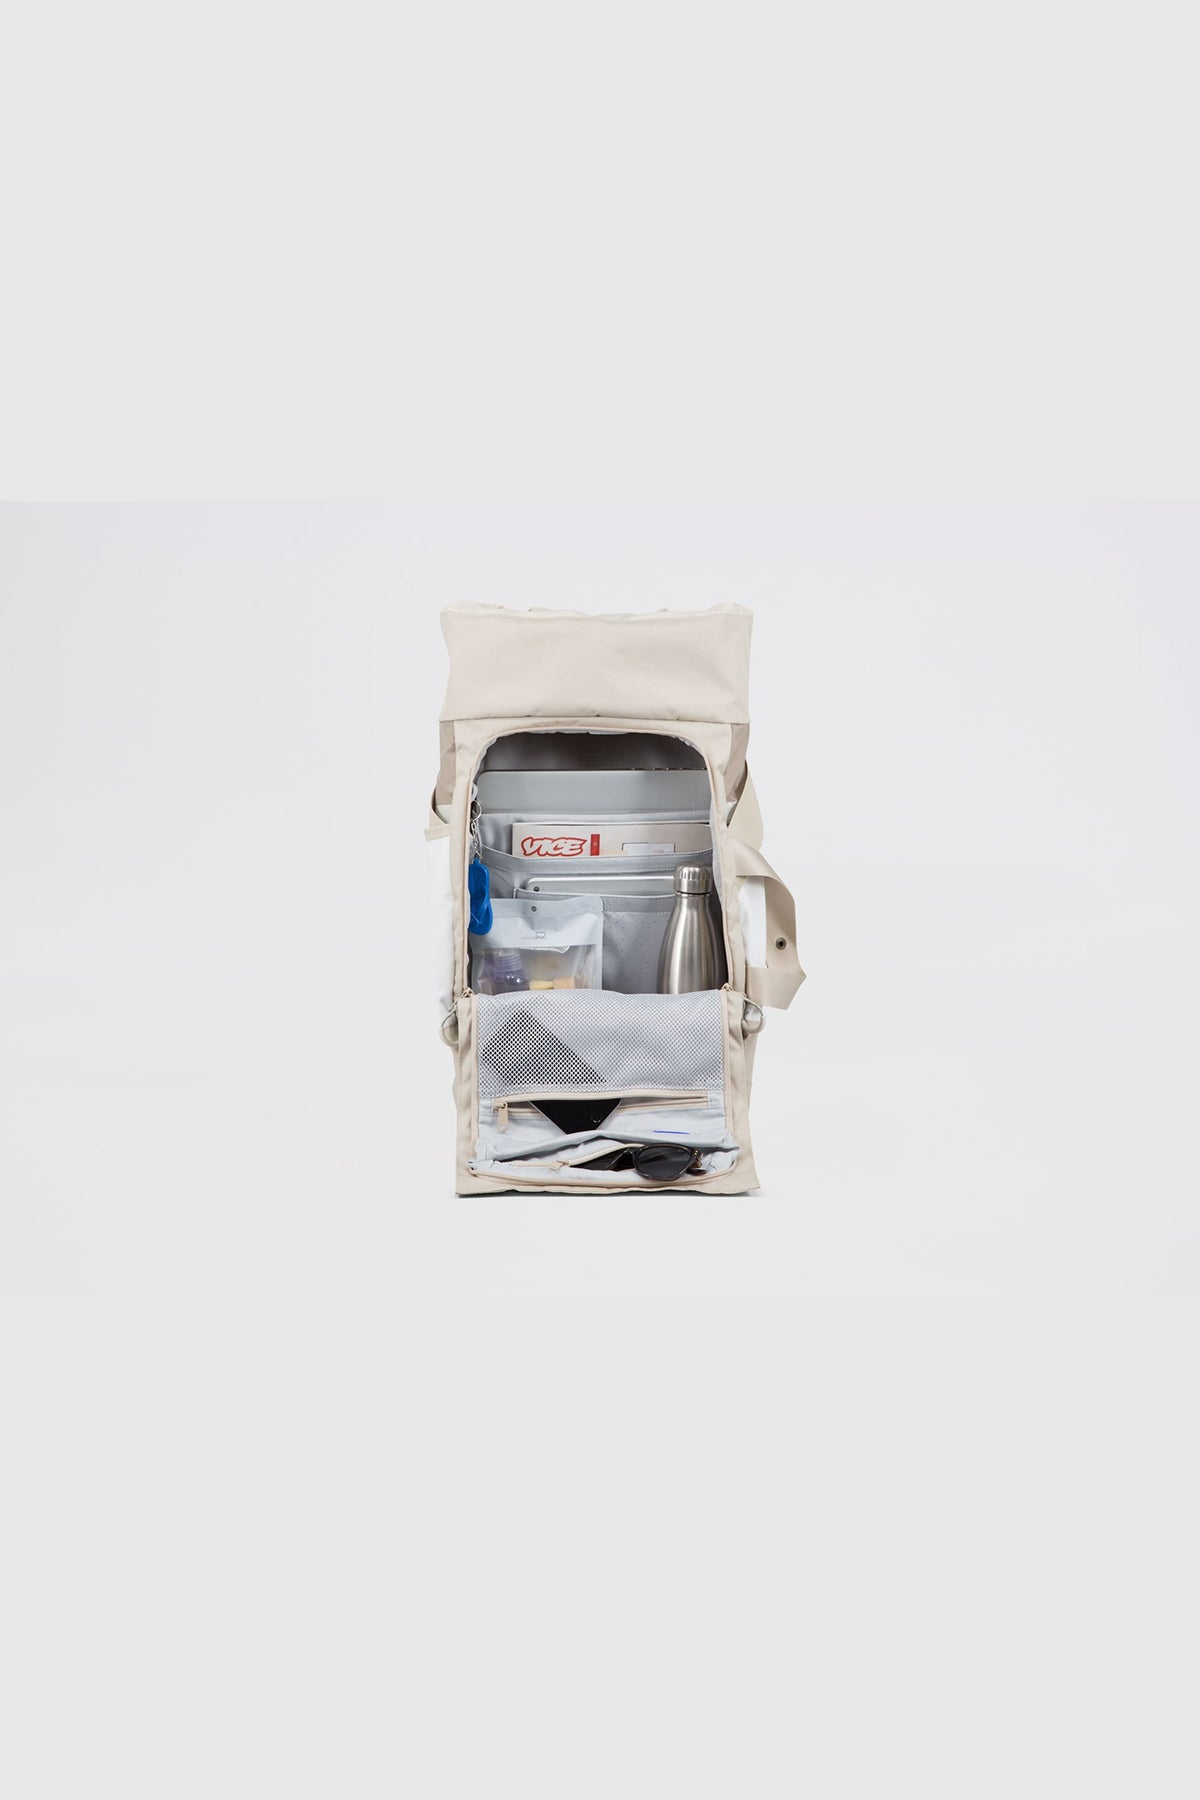 Pinqpong - Backpack Blok Medium (Tape Khaki) PPC-BLM-001-733B